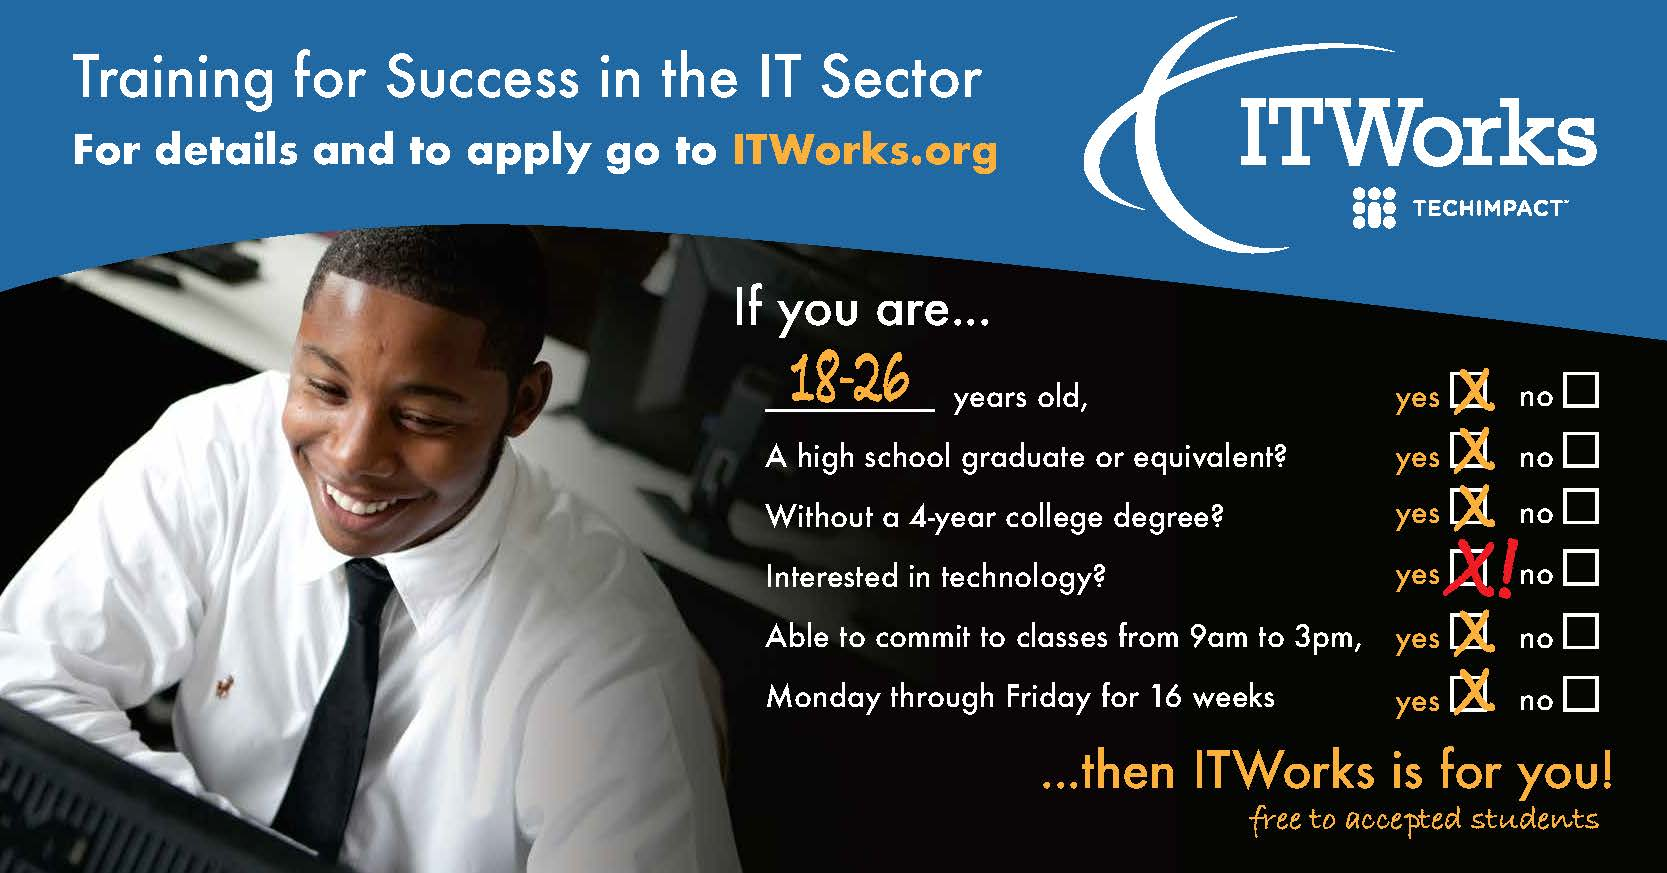 Train for Success in the IT Sector. Apply at: ITWorks.org